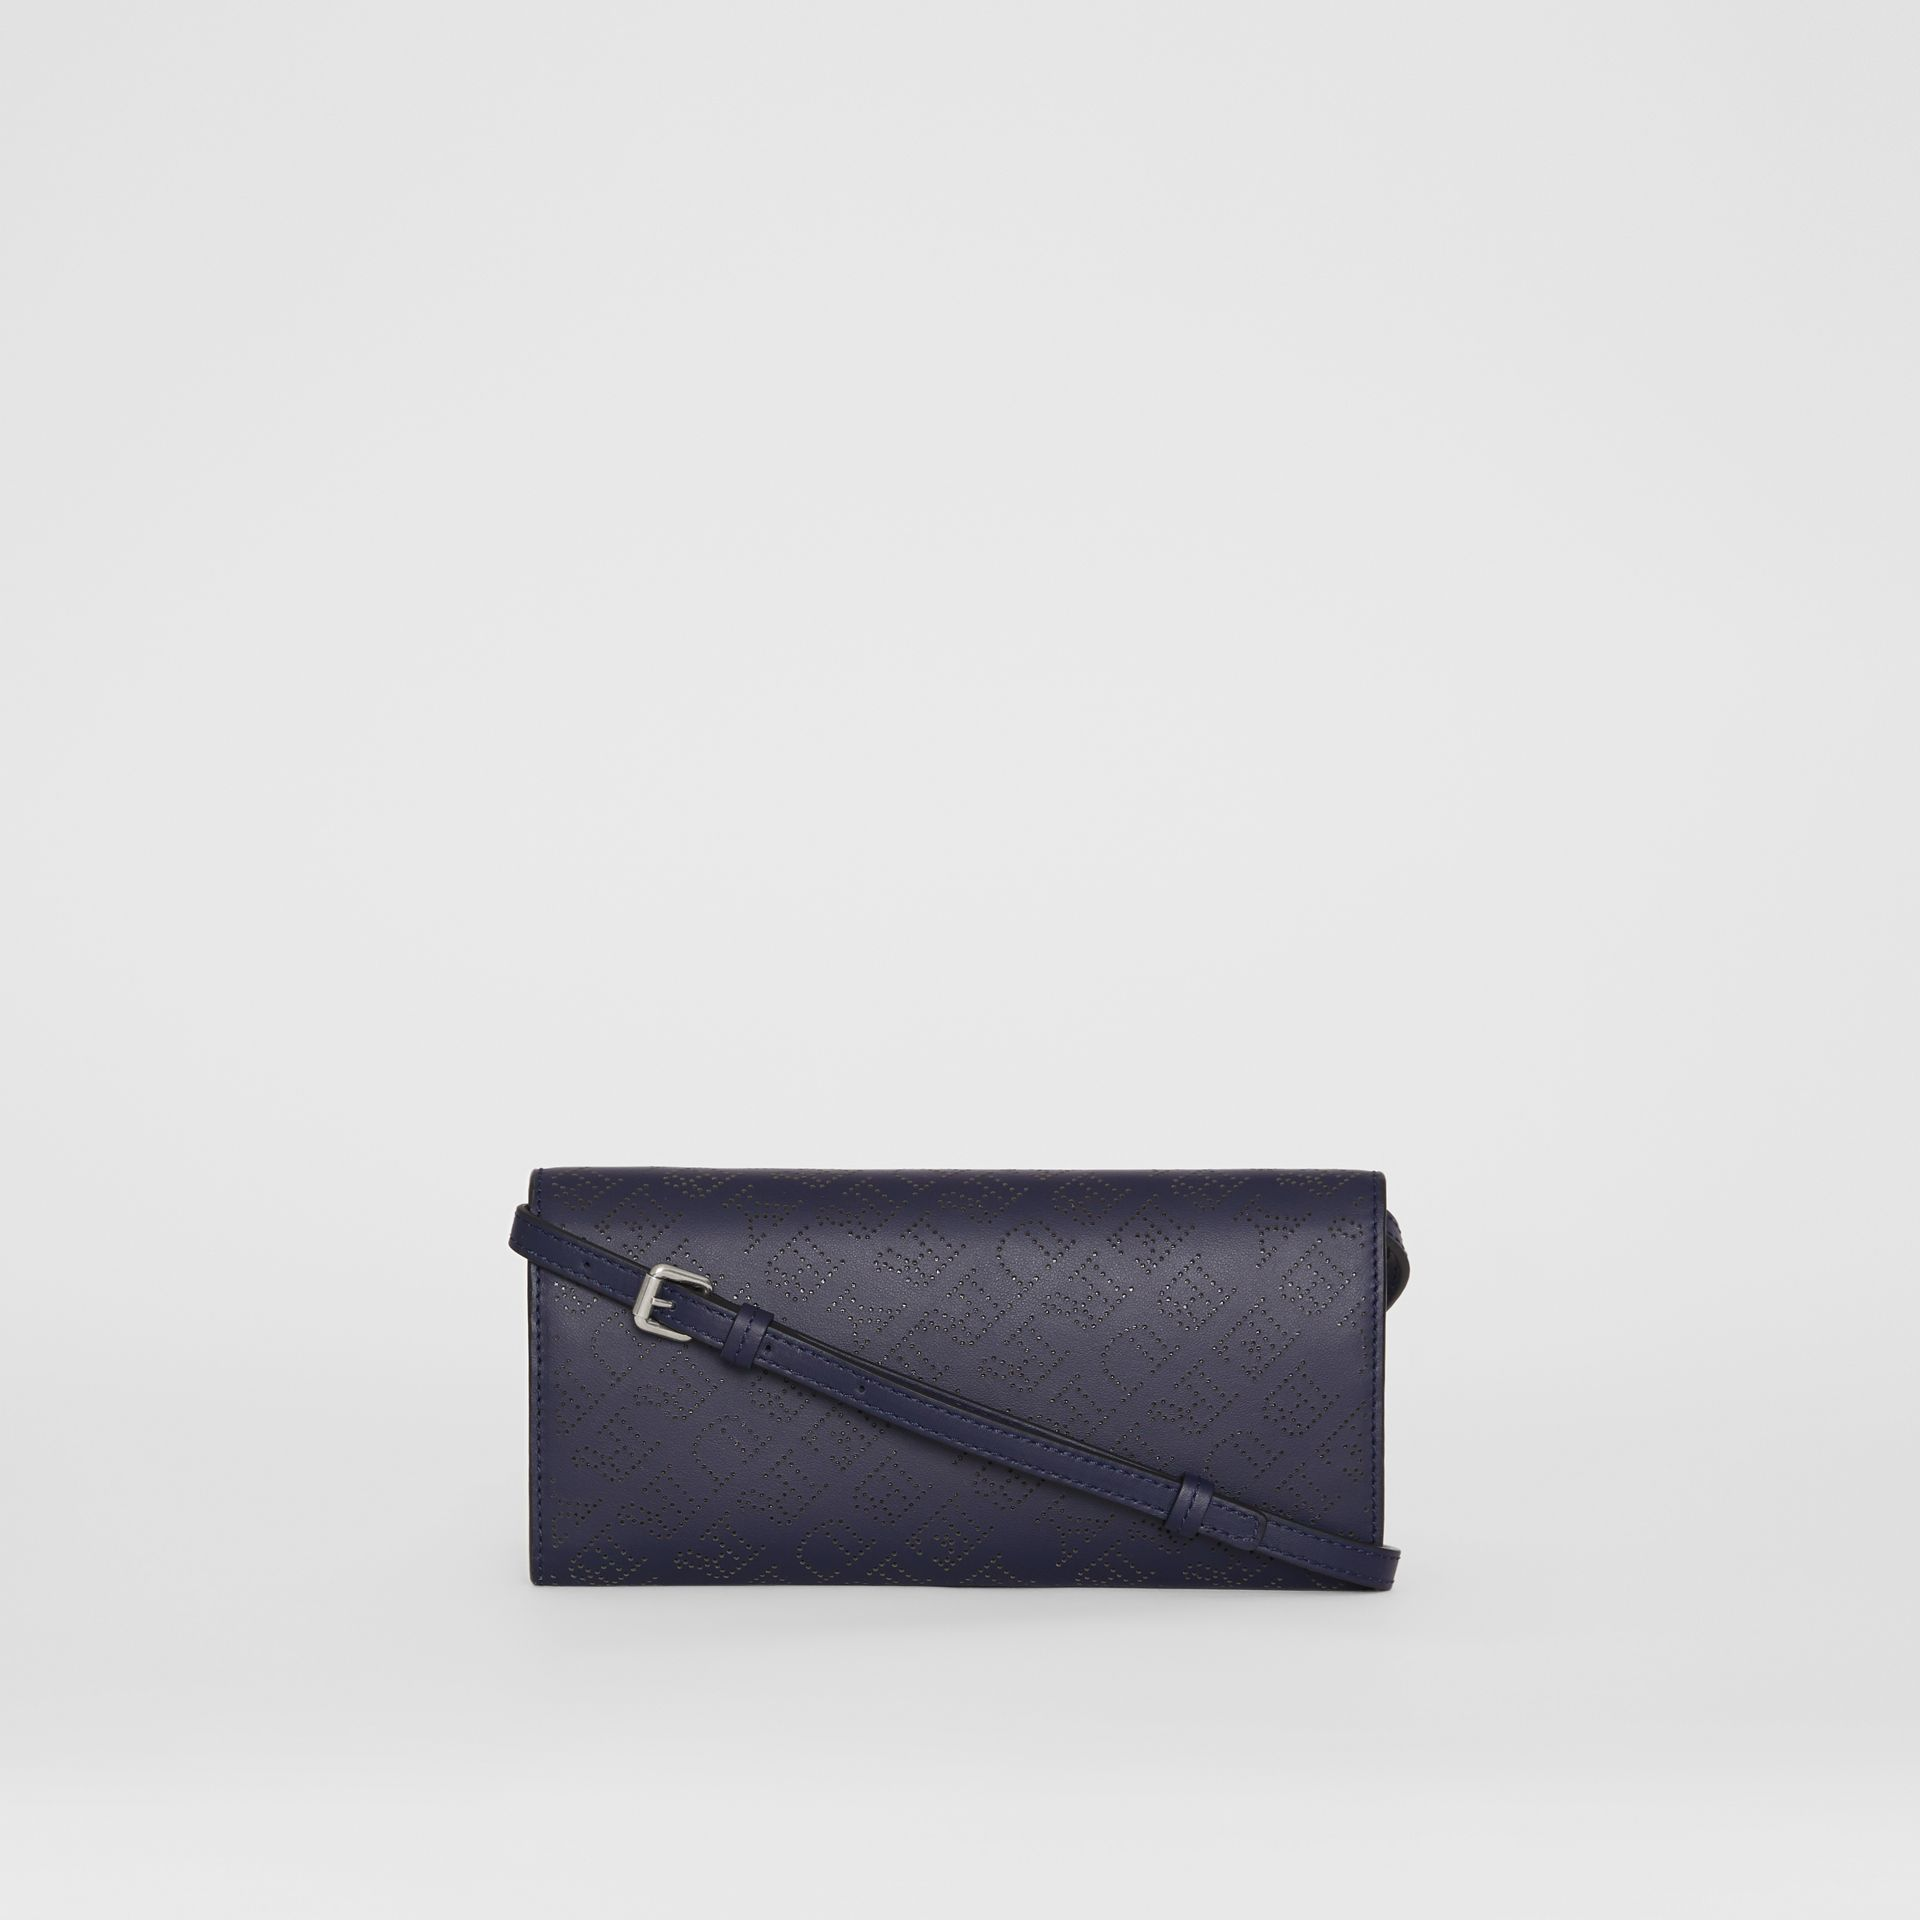 Perforated Logo Leather Wallet with Detachable Strap in Navy - Women | Burberry United Kingdom - gallery image 7